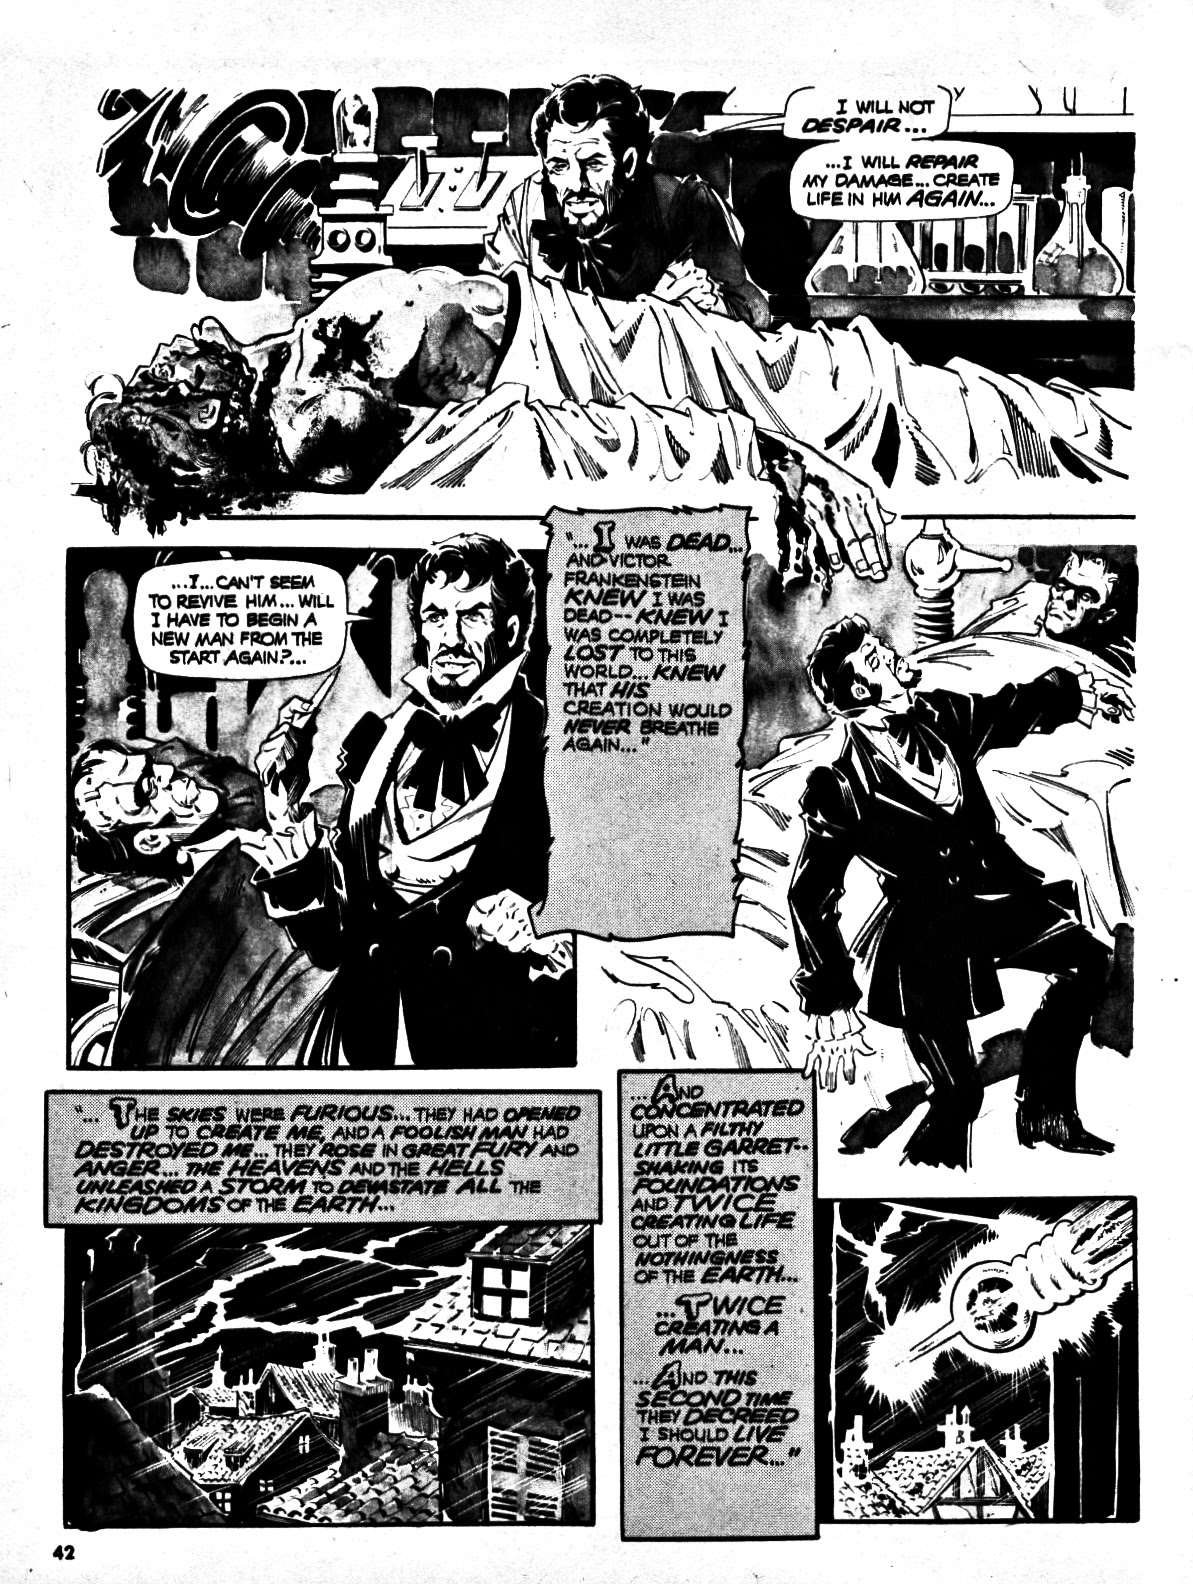 Scream (1973) issue 7 - Page 41